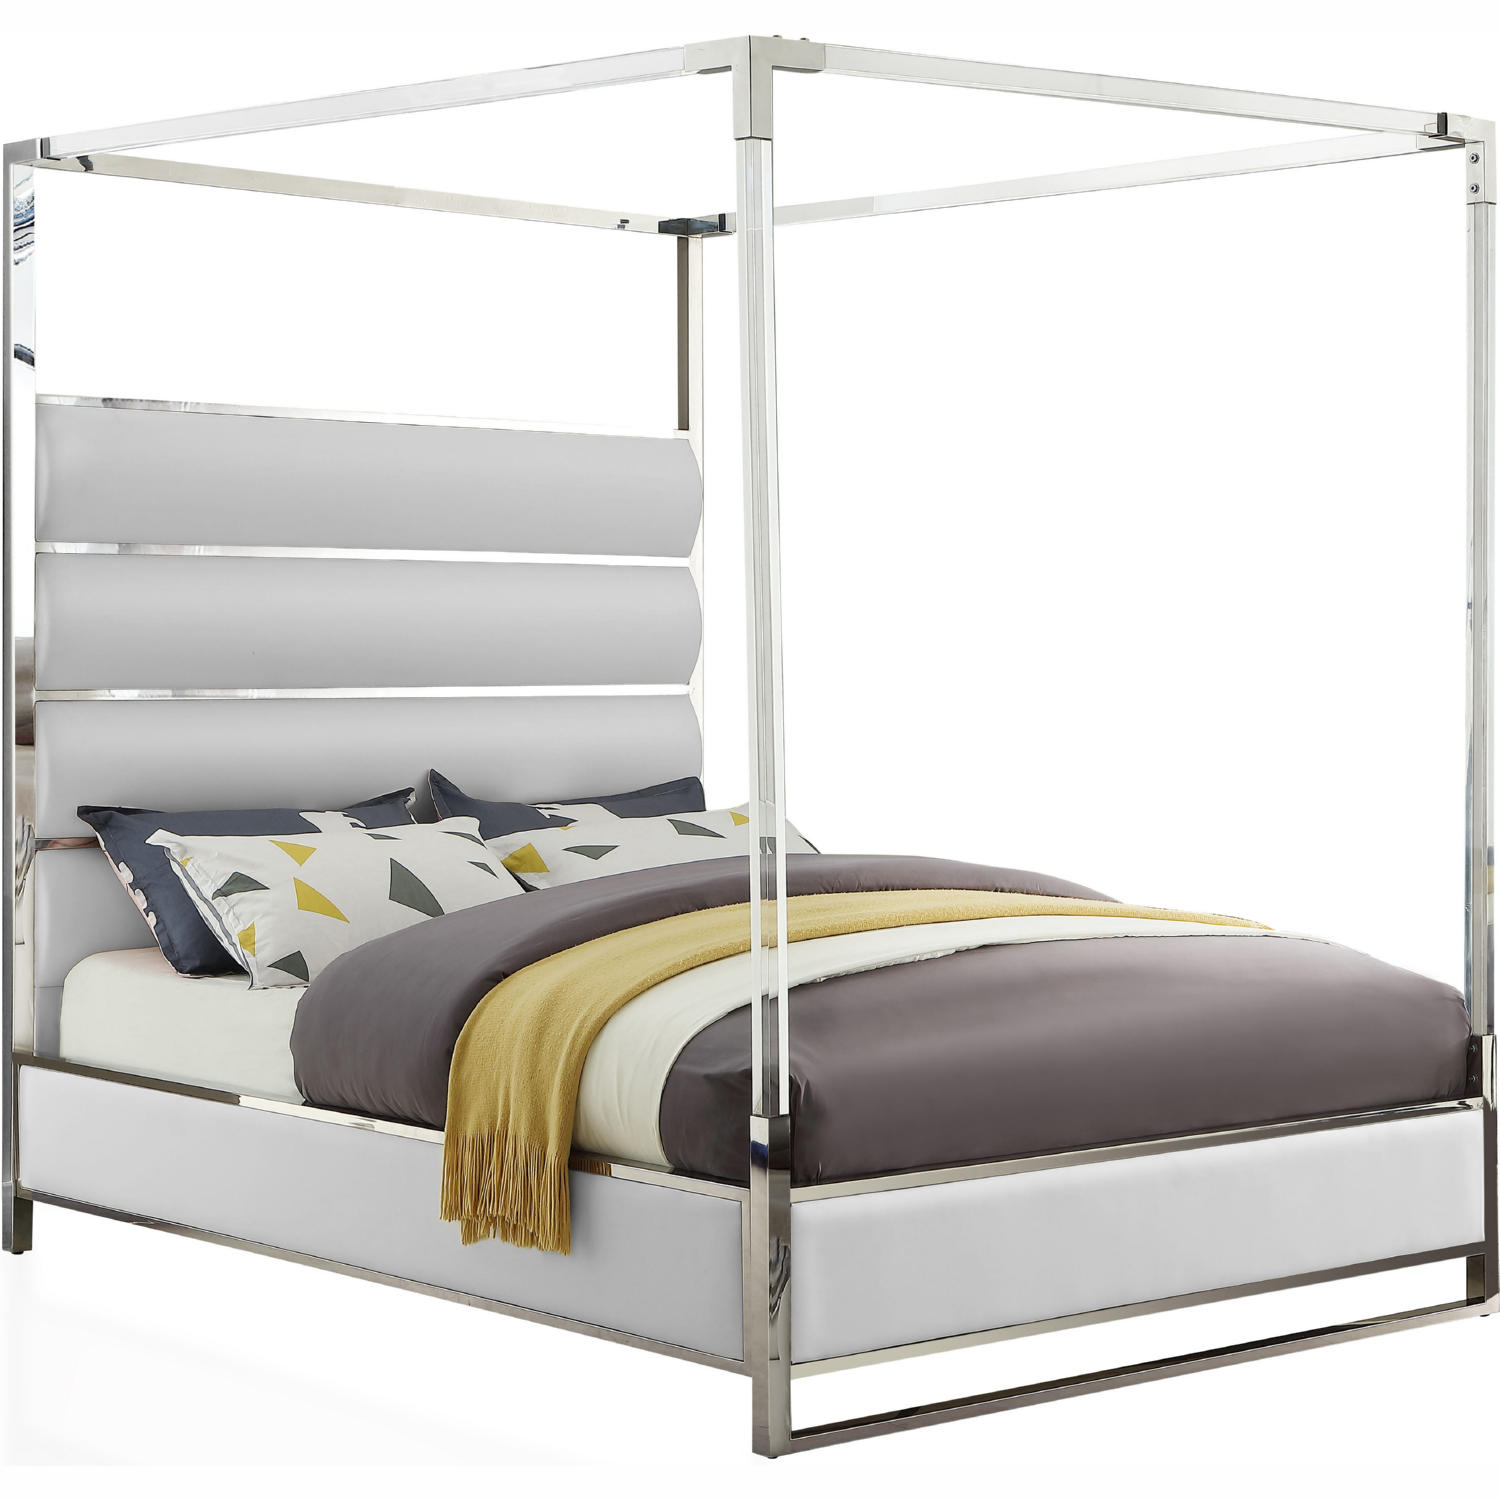 - Meridian EncoreWhite-Q Encore Canopy Queen Bed In White